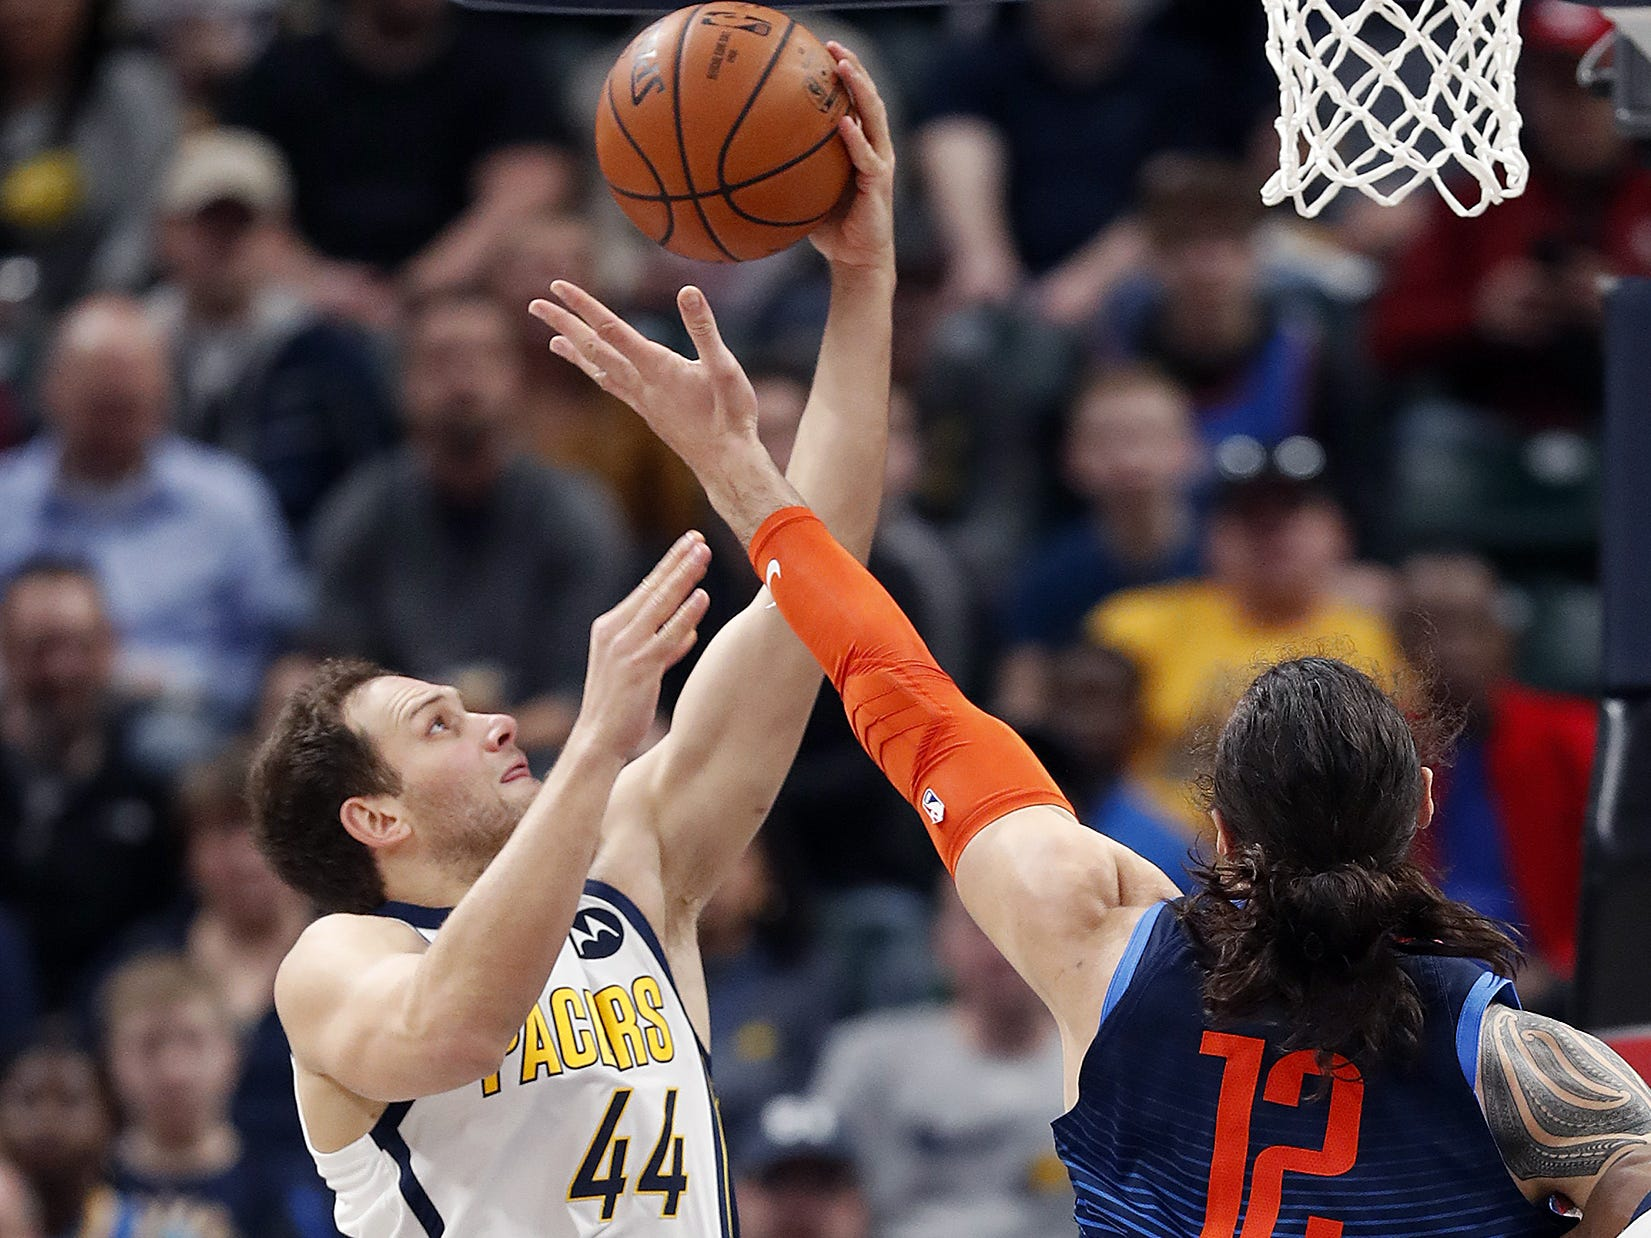 Indiana Pacers forward Bojan Bogdanovic (44) pulls in a rebound away from Oklahoma City Thunder center Steven Adams (12) in the first half of their game at Bankers Life Fieldhouse on Thursday, Mar. 14, 2019.